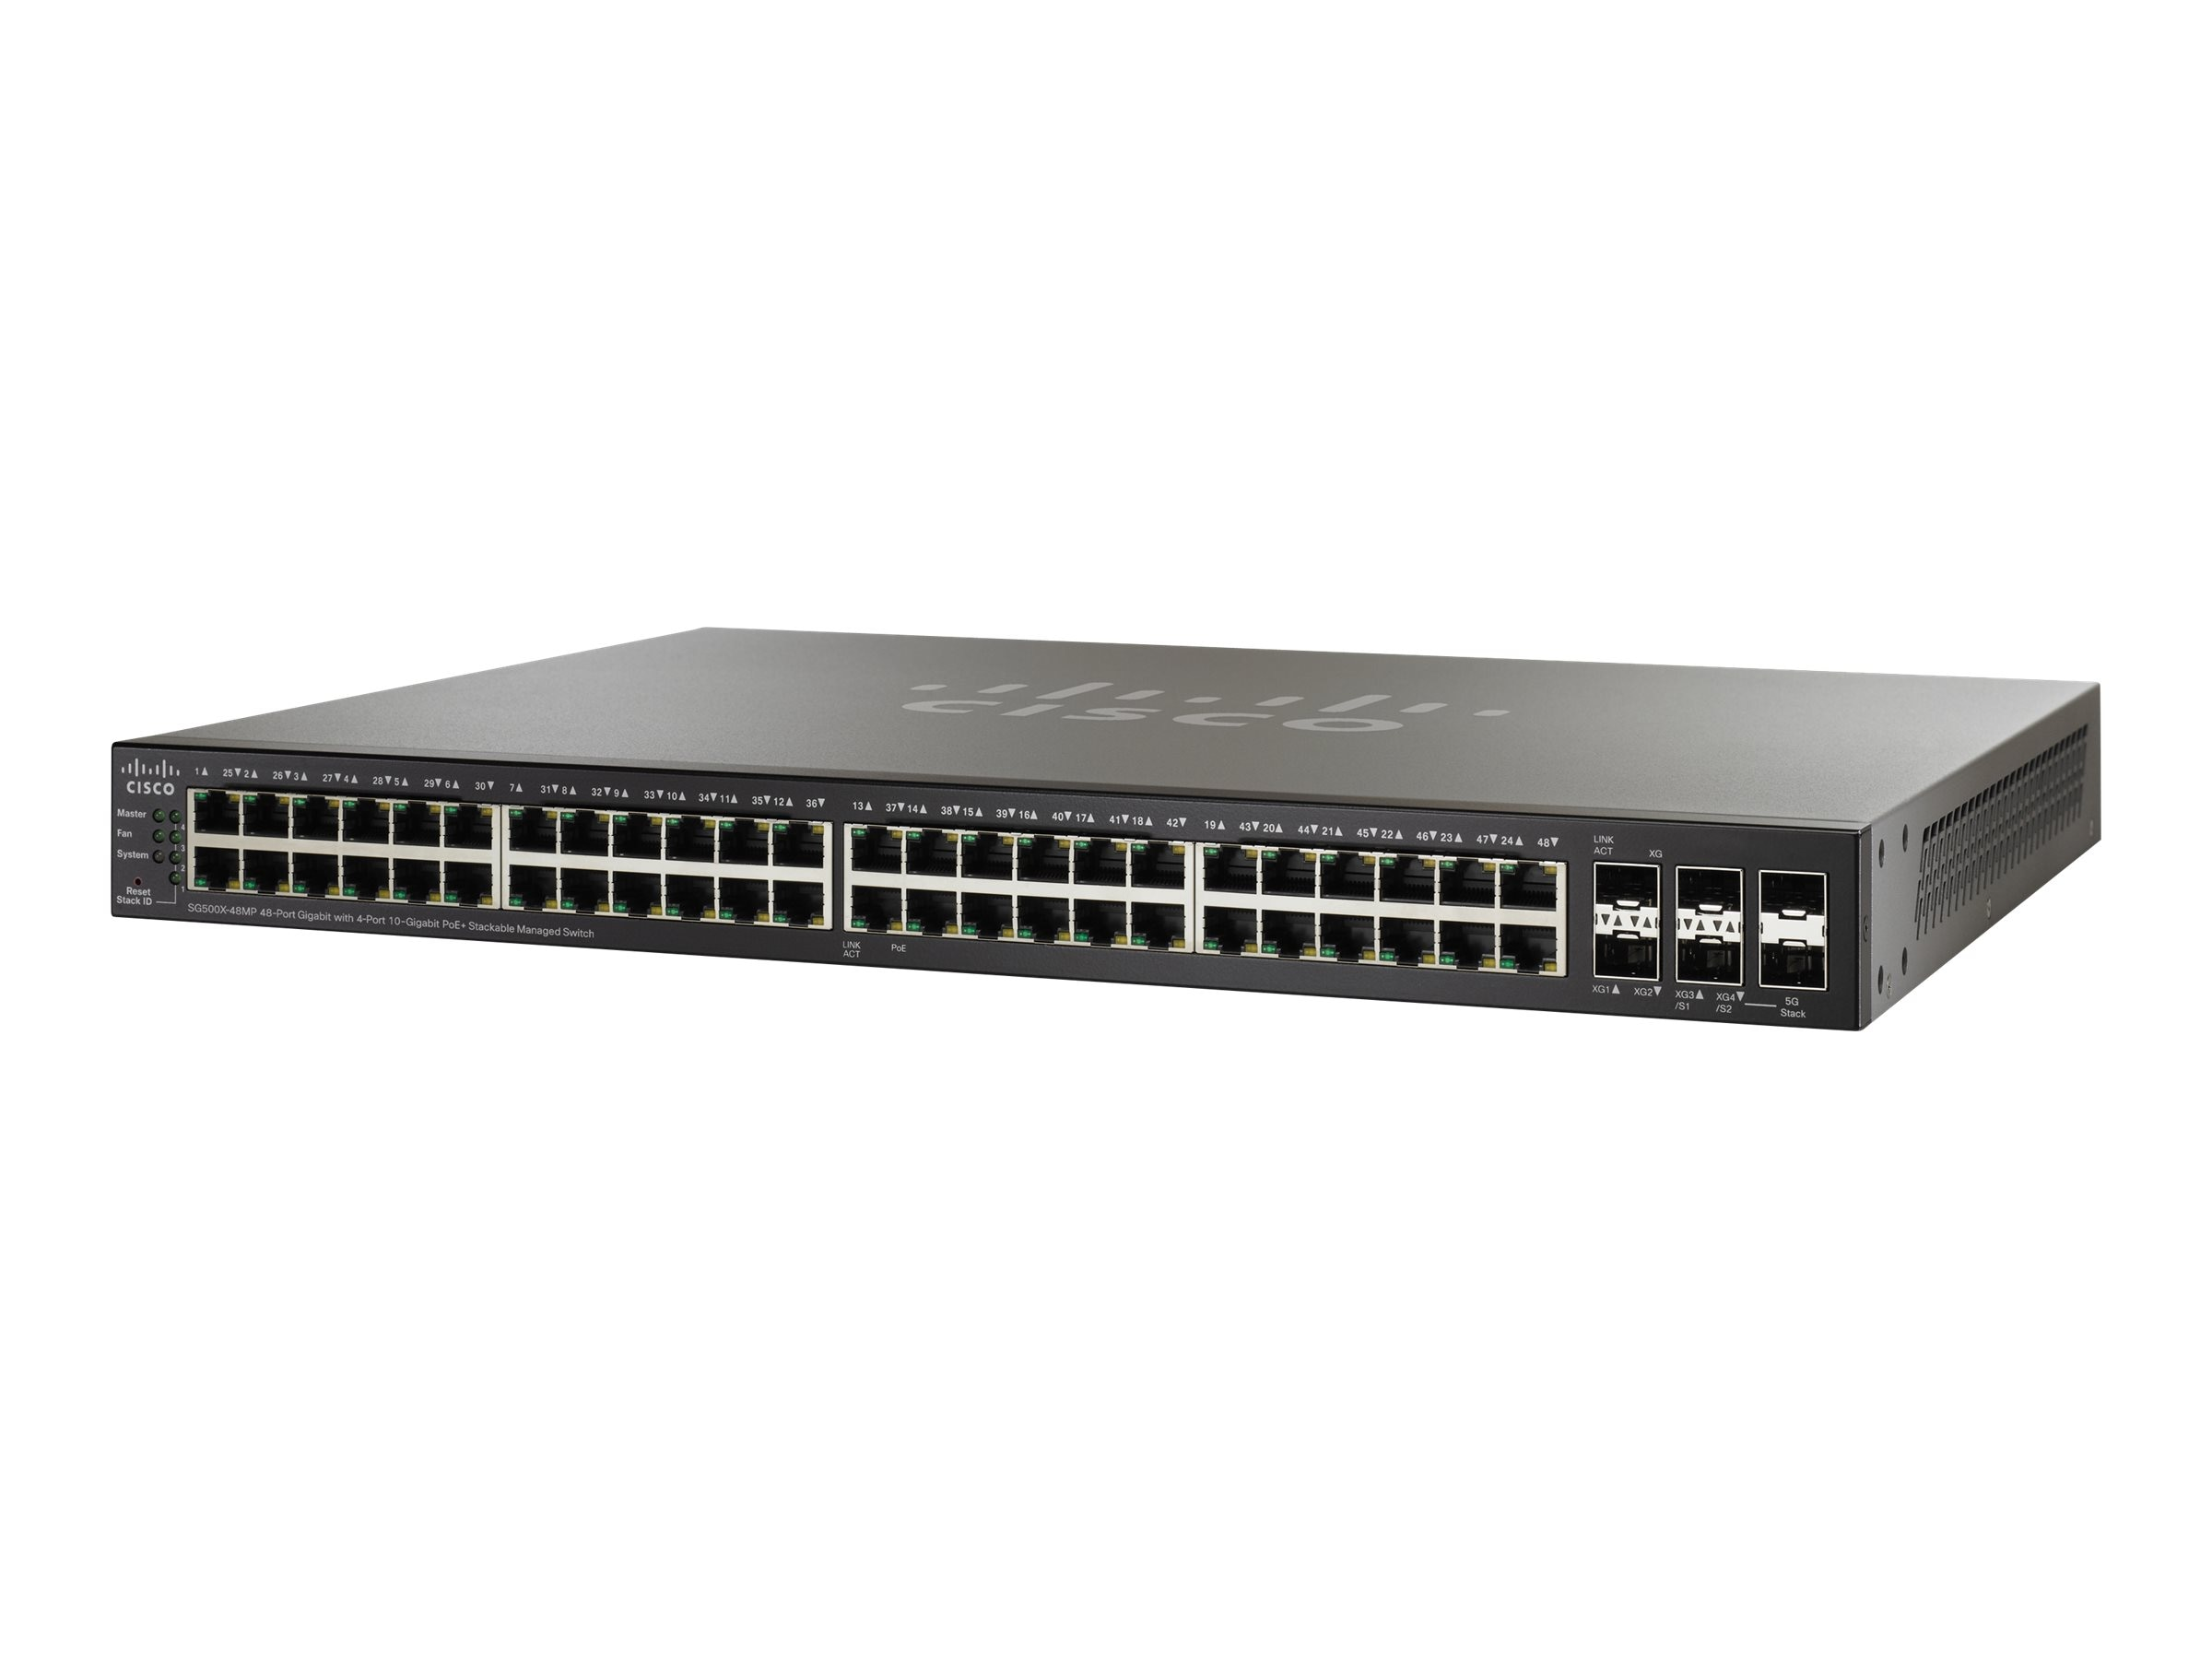 Cisco SG500X-48MPP 48PT Gigabit Switch + 4 10-GIG MAX POE, SG500X-48MP-K9-NA, 17345312, Network Switches